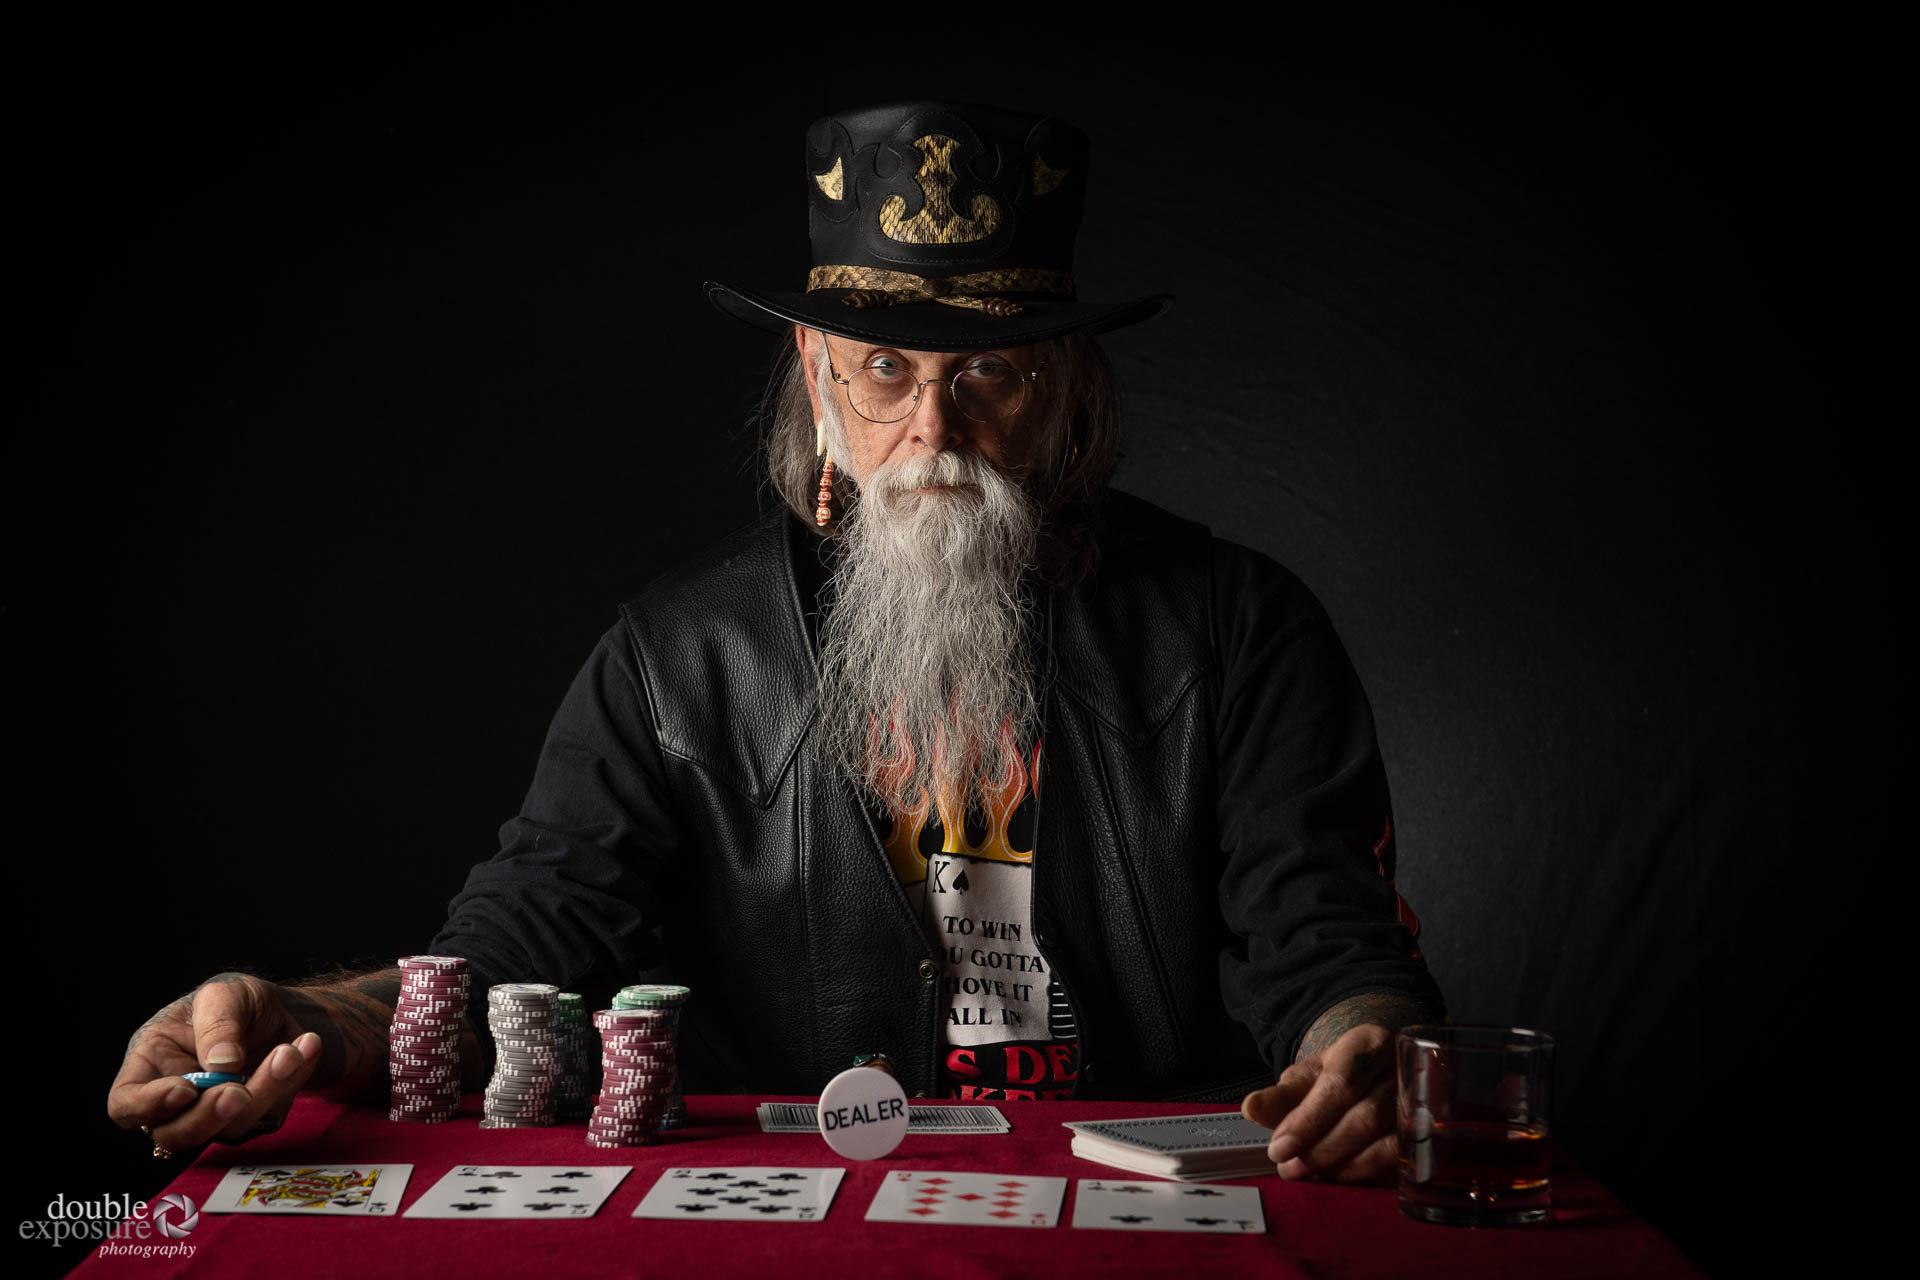 intimidating look from poker player